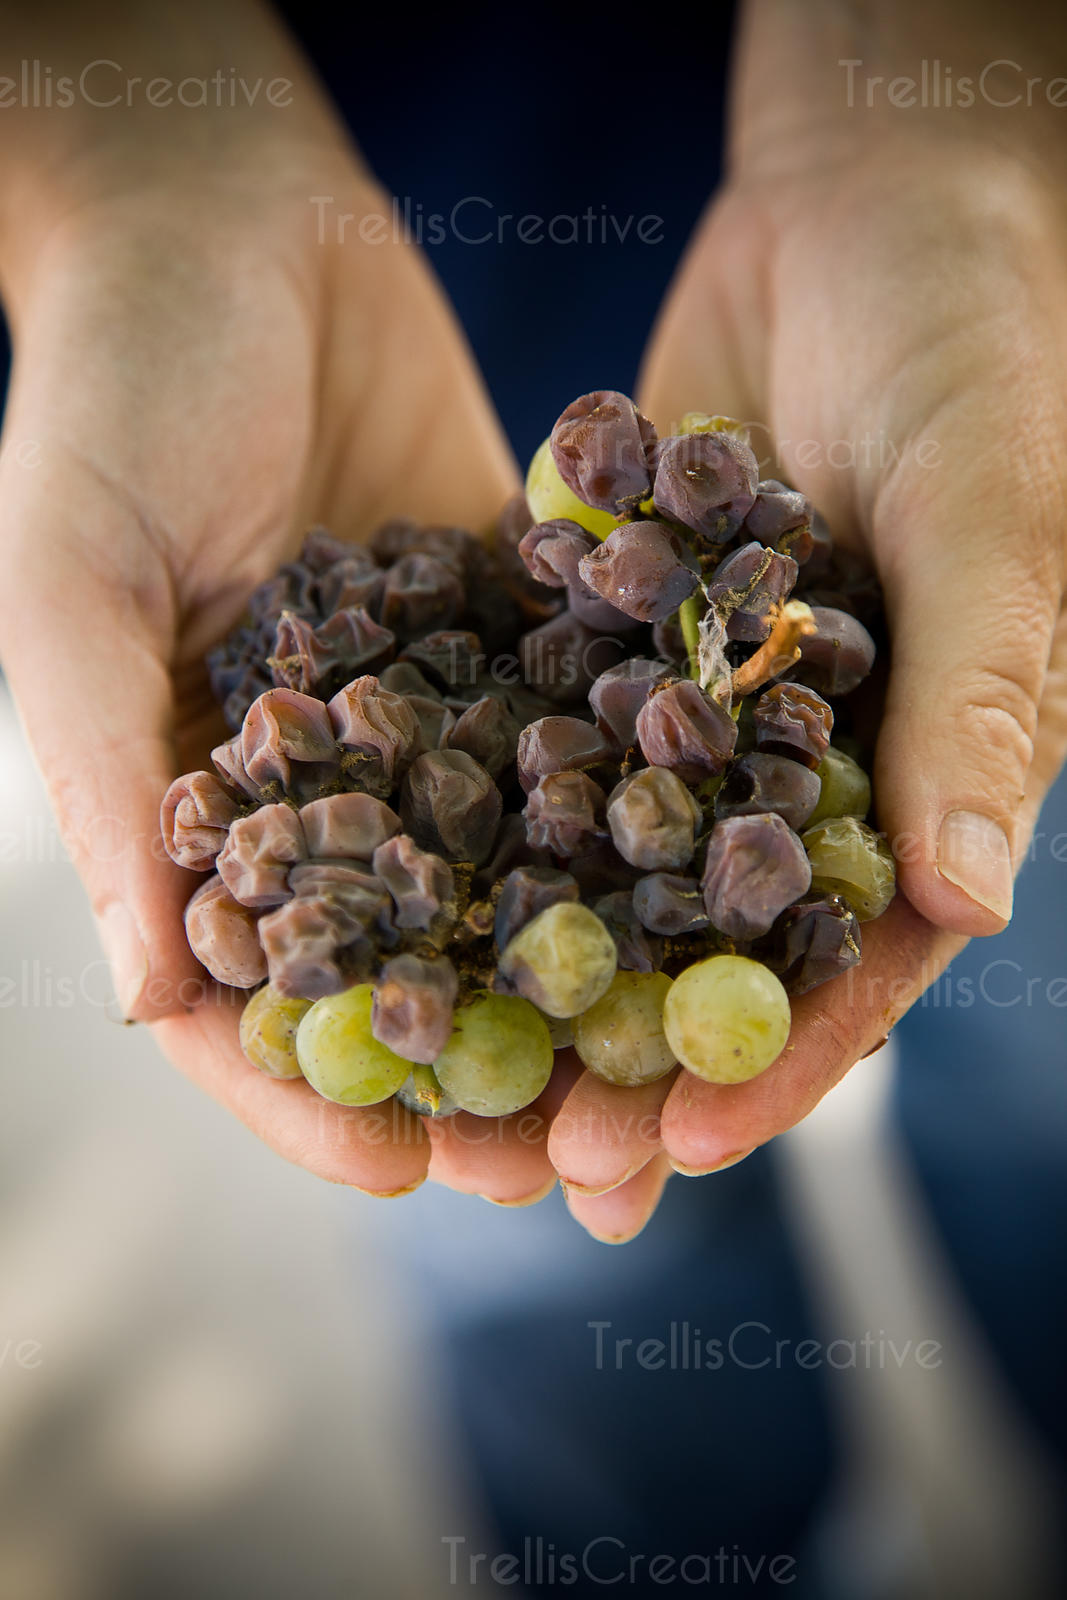 A woman holds a cluster of chardonnay grape cluster with botritis in her hands